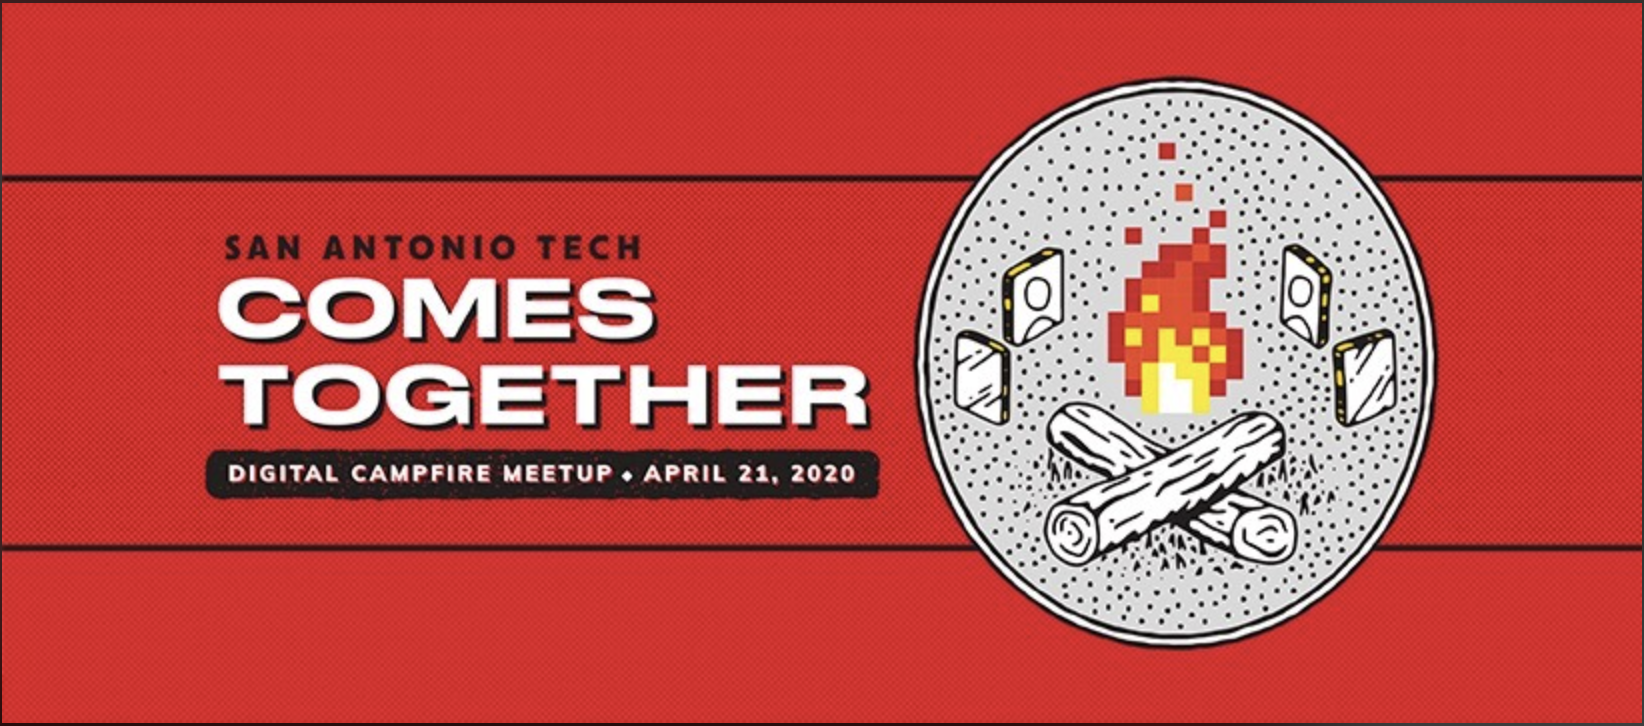 SA Tech Comes Together: Digital Campfire Meetup